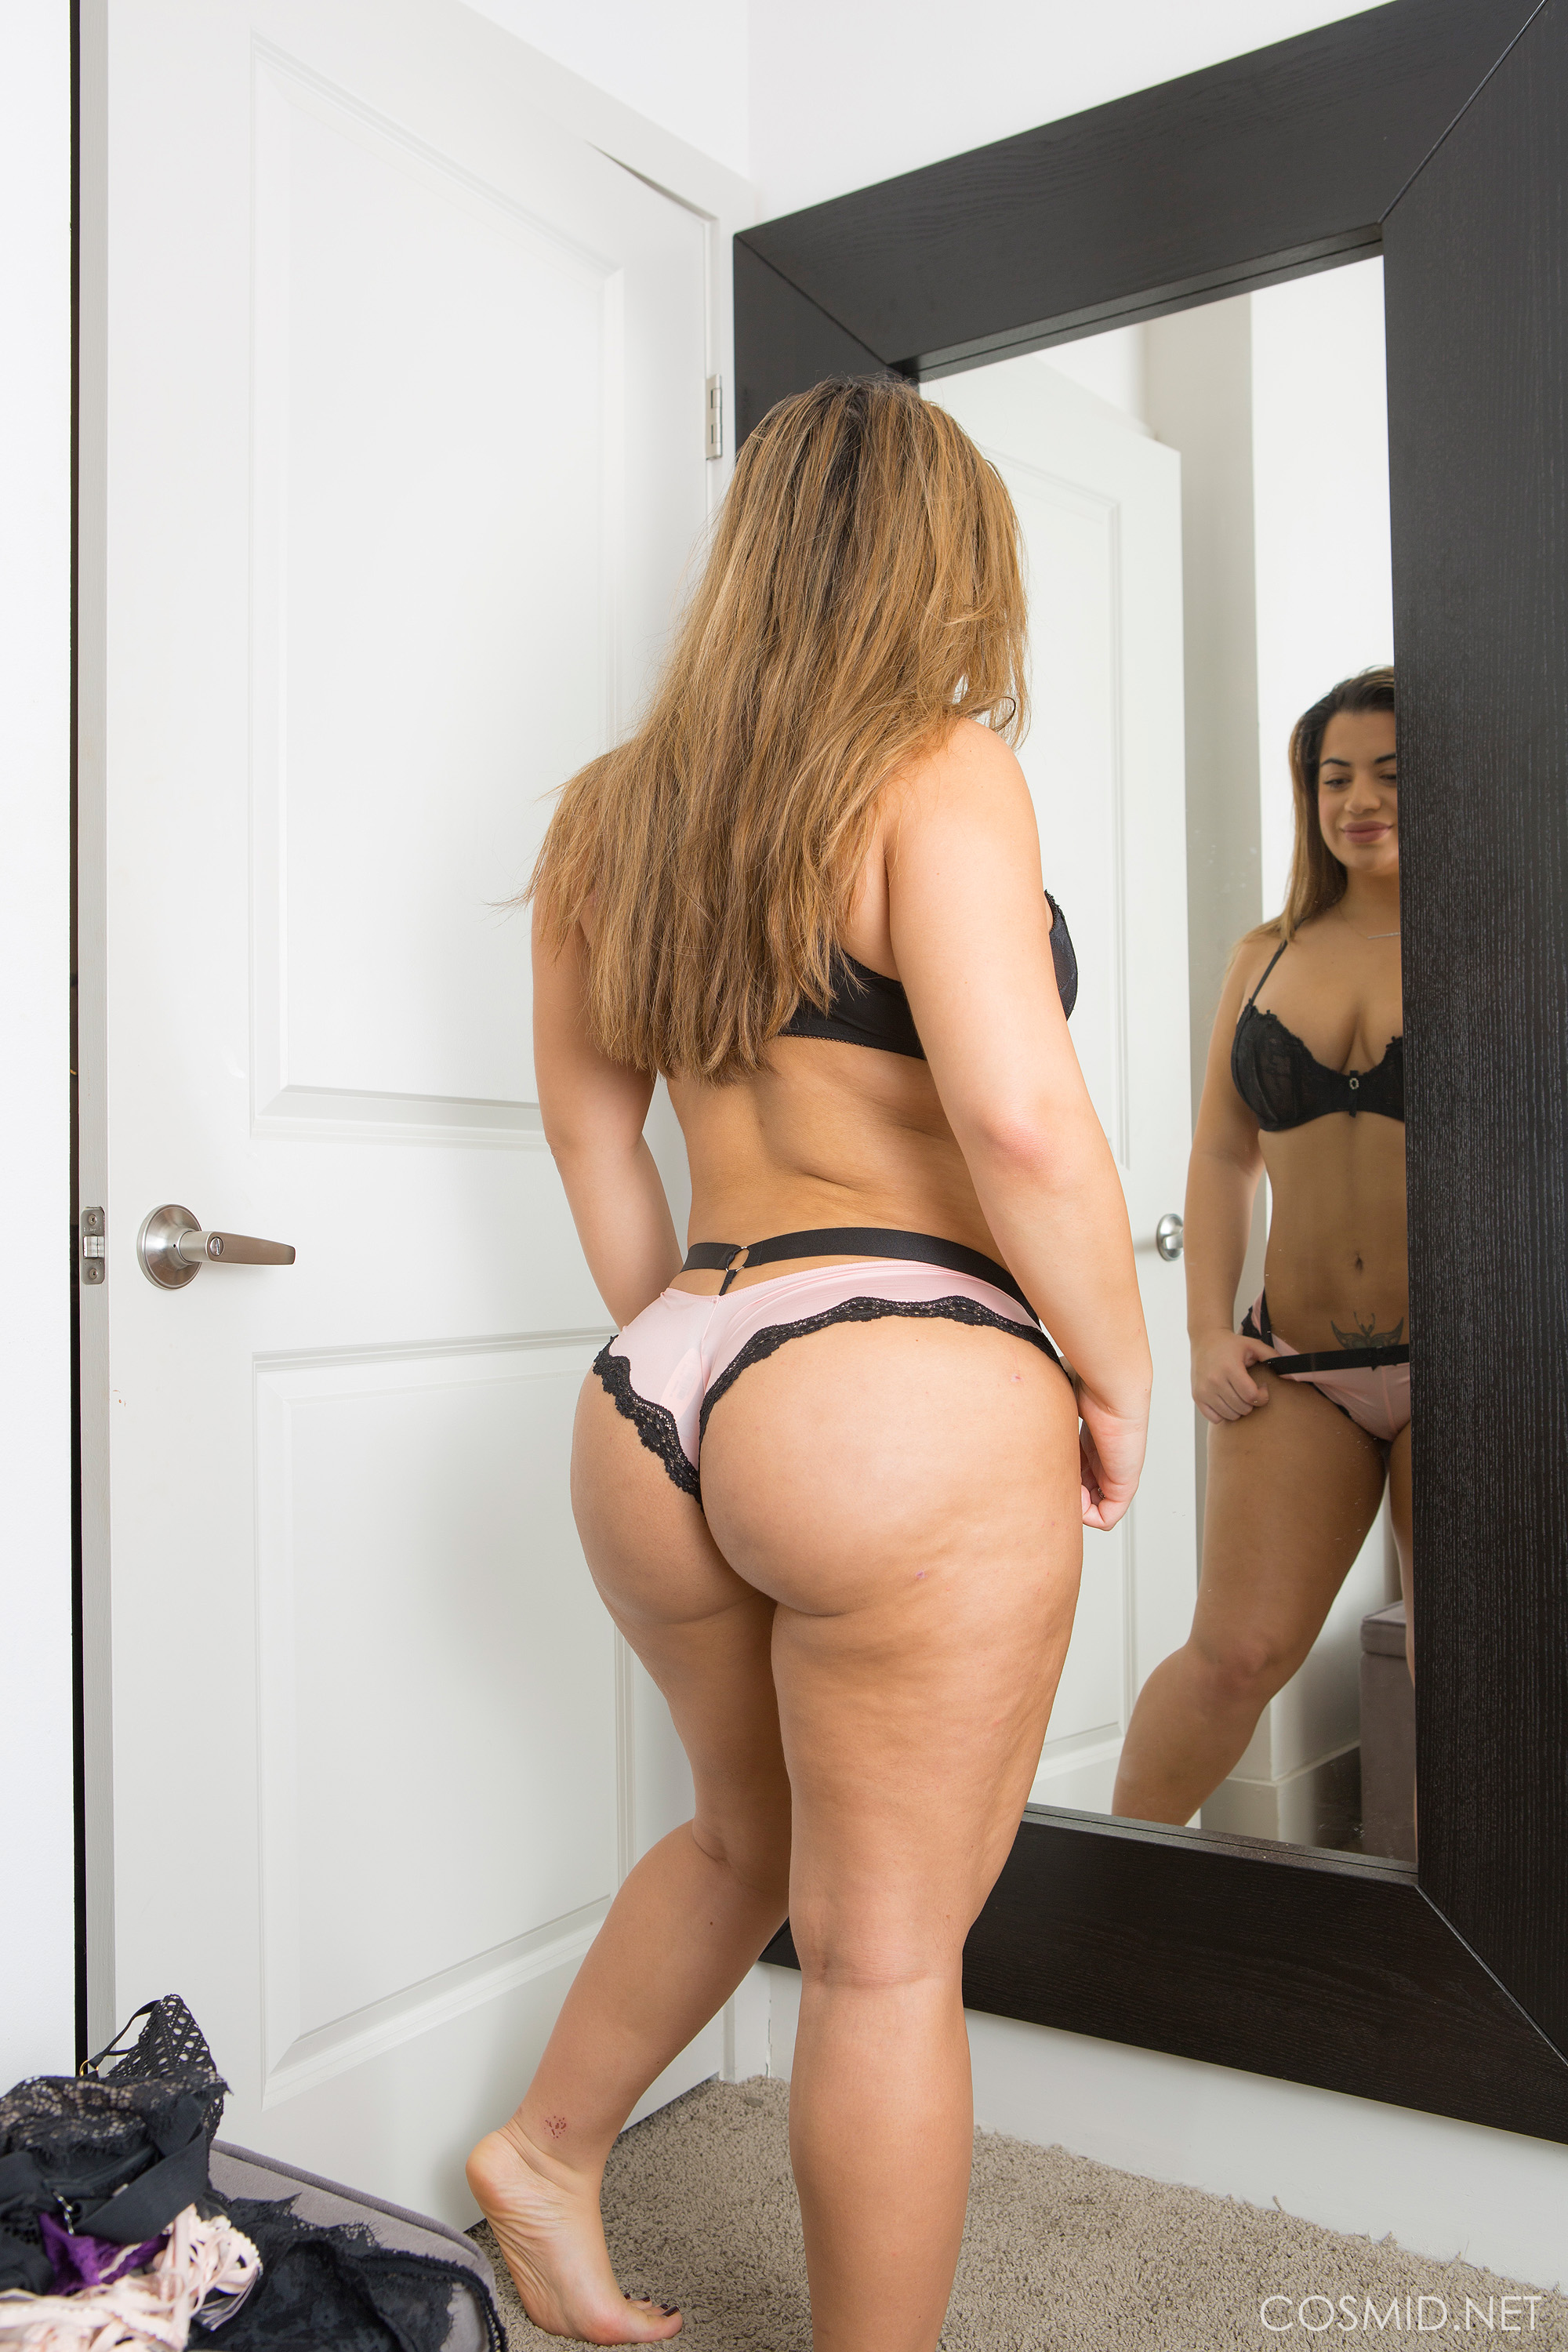 Lisa Martiz Has The Most Amazing Ass Ever And Shows Her Heavenly Tits Too